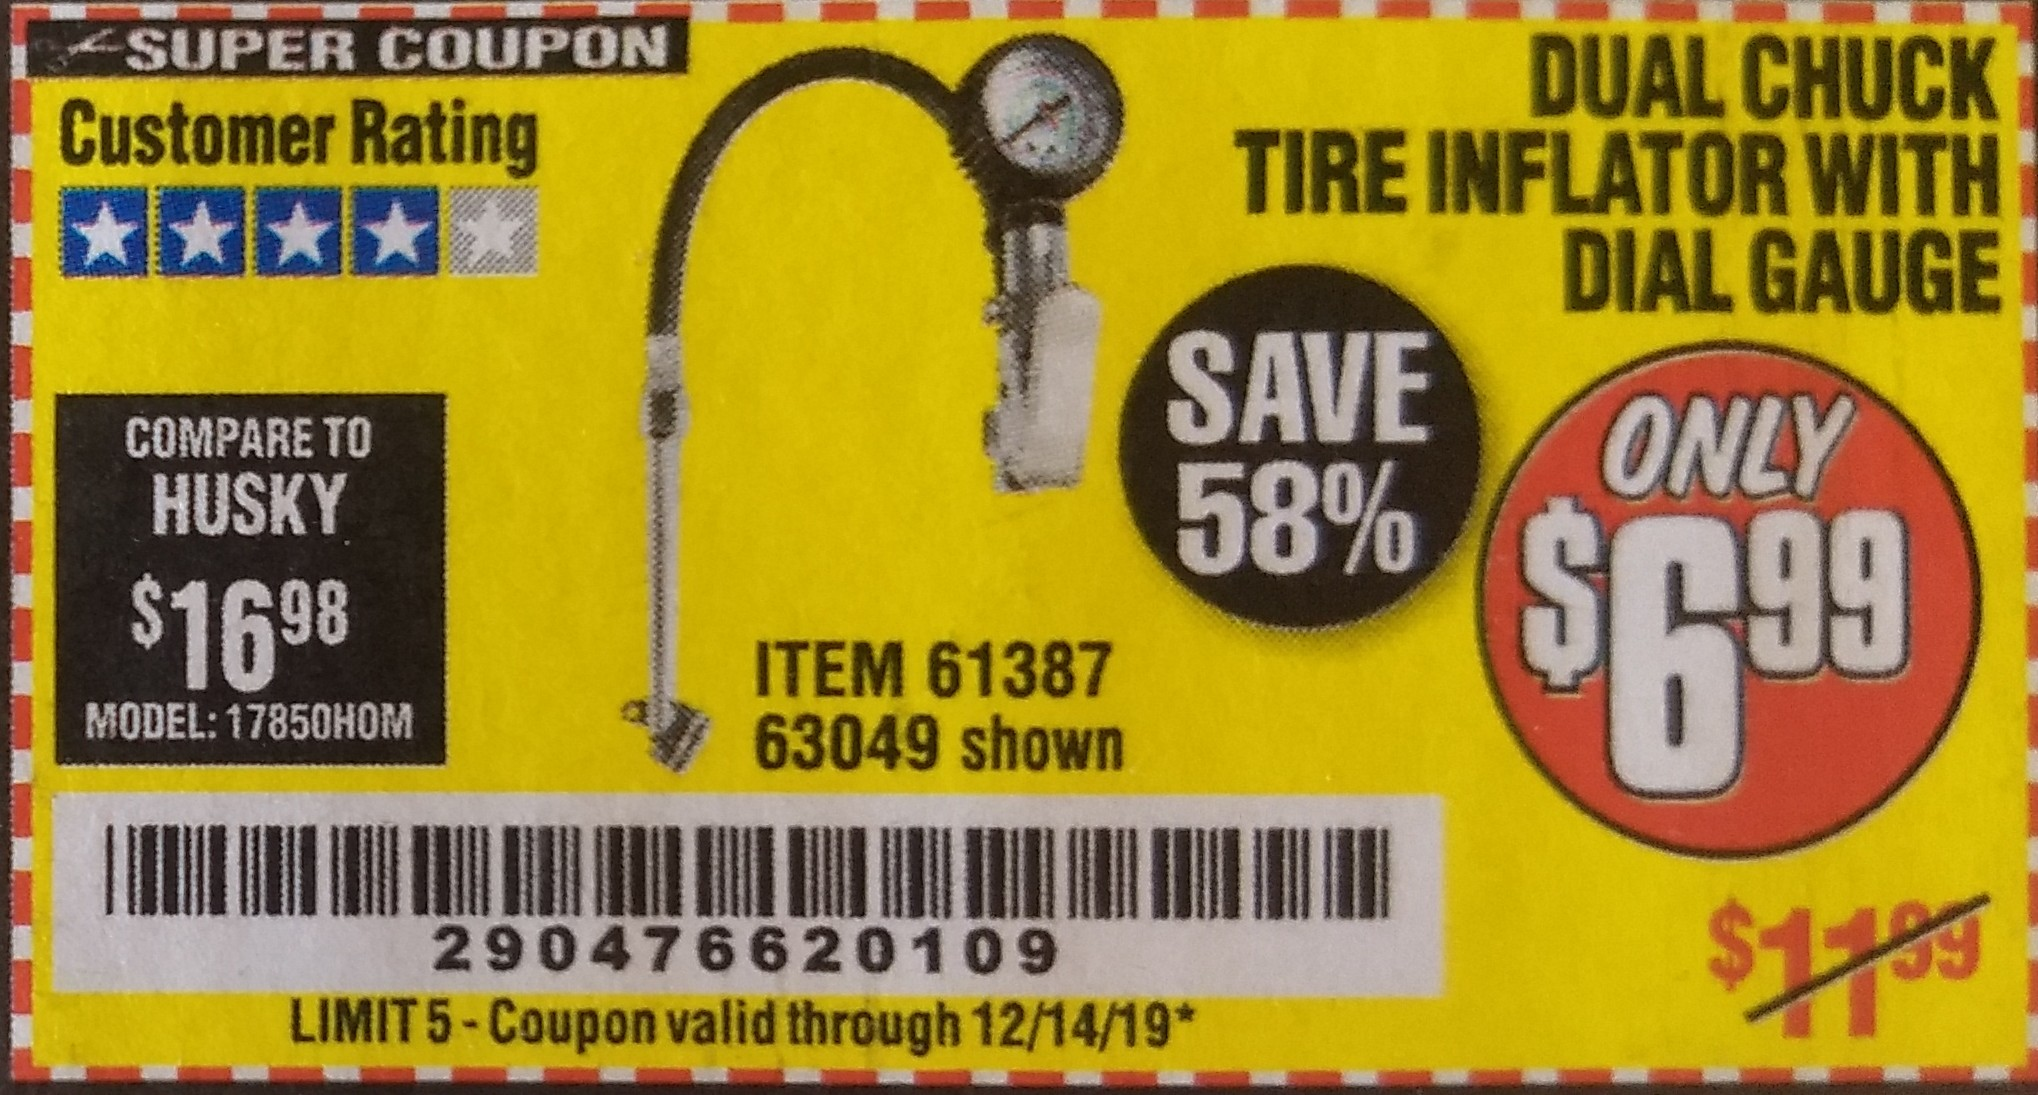 www.hfqpdb.com - DUAL CHUCK TIRE INFLATOR WITH DIAL GAUGE Lot No. 68271/61387